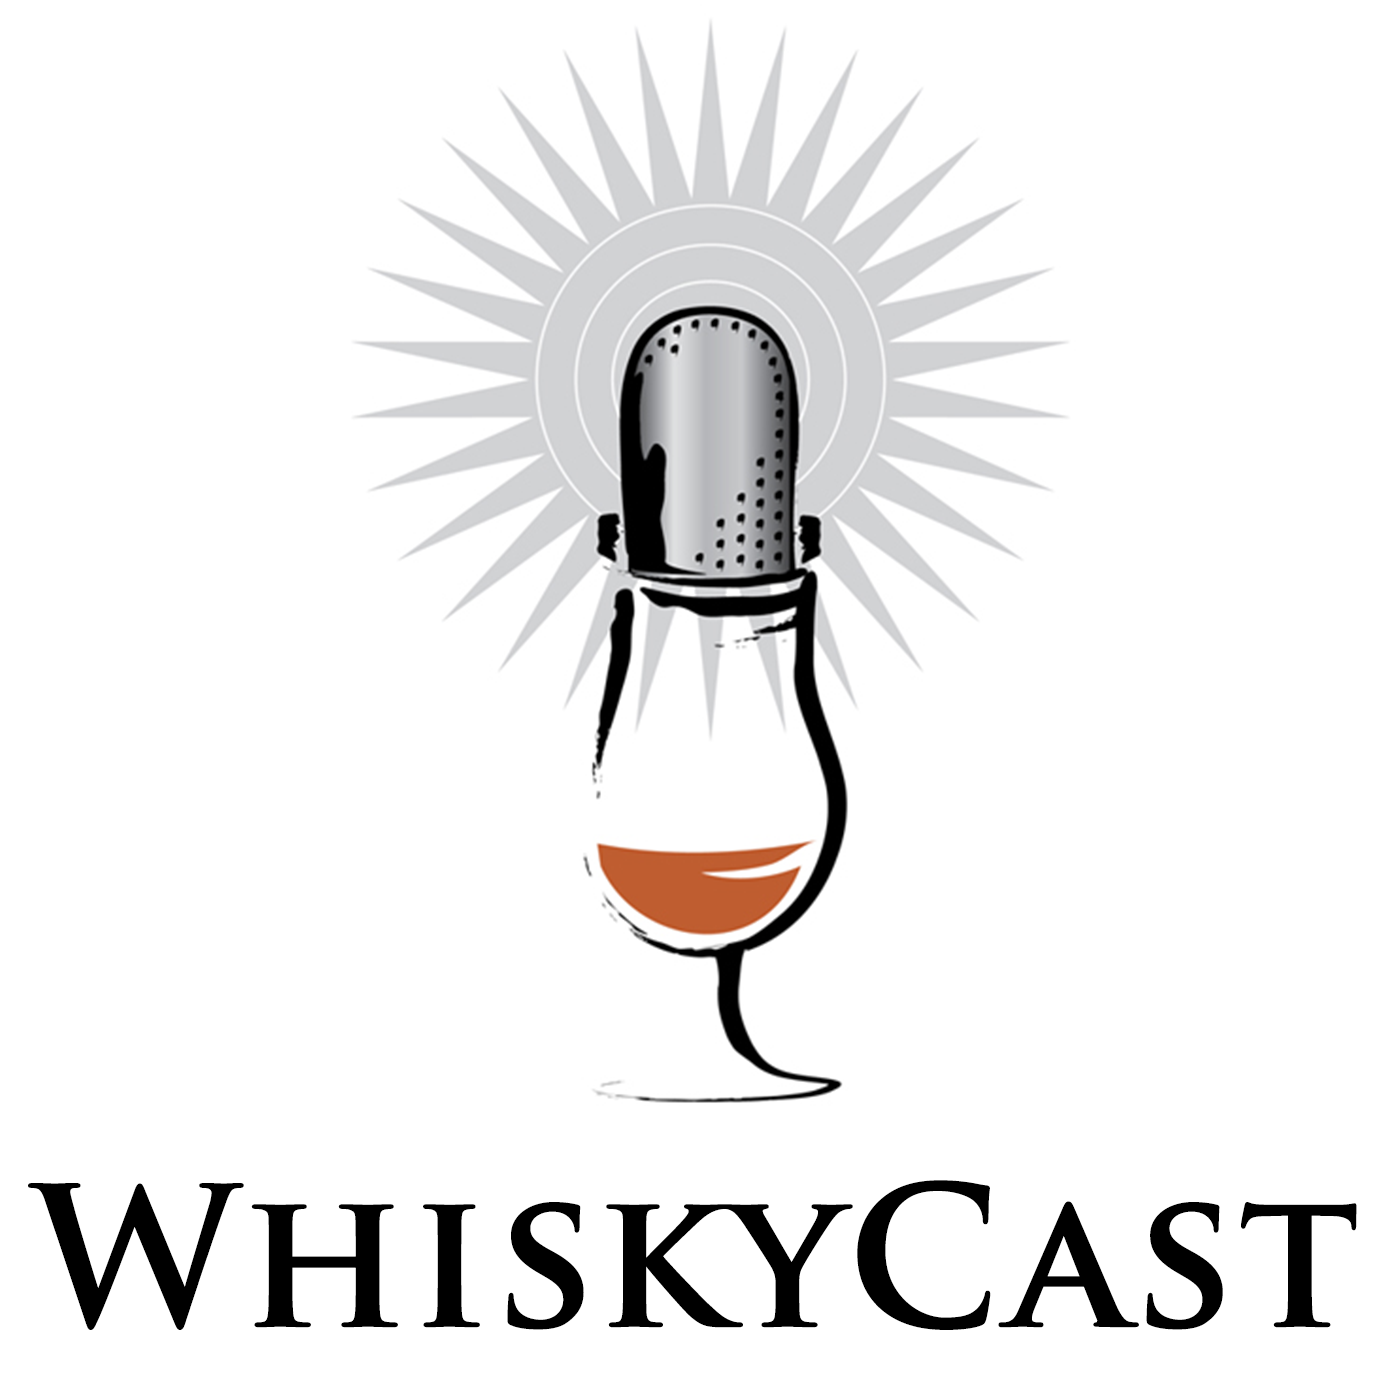 WhiskyCast Episode 441: September 7, 2013